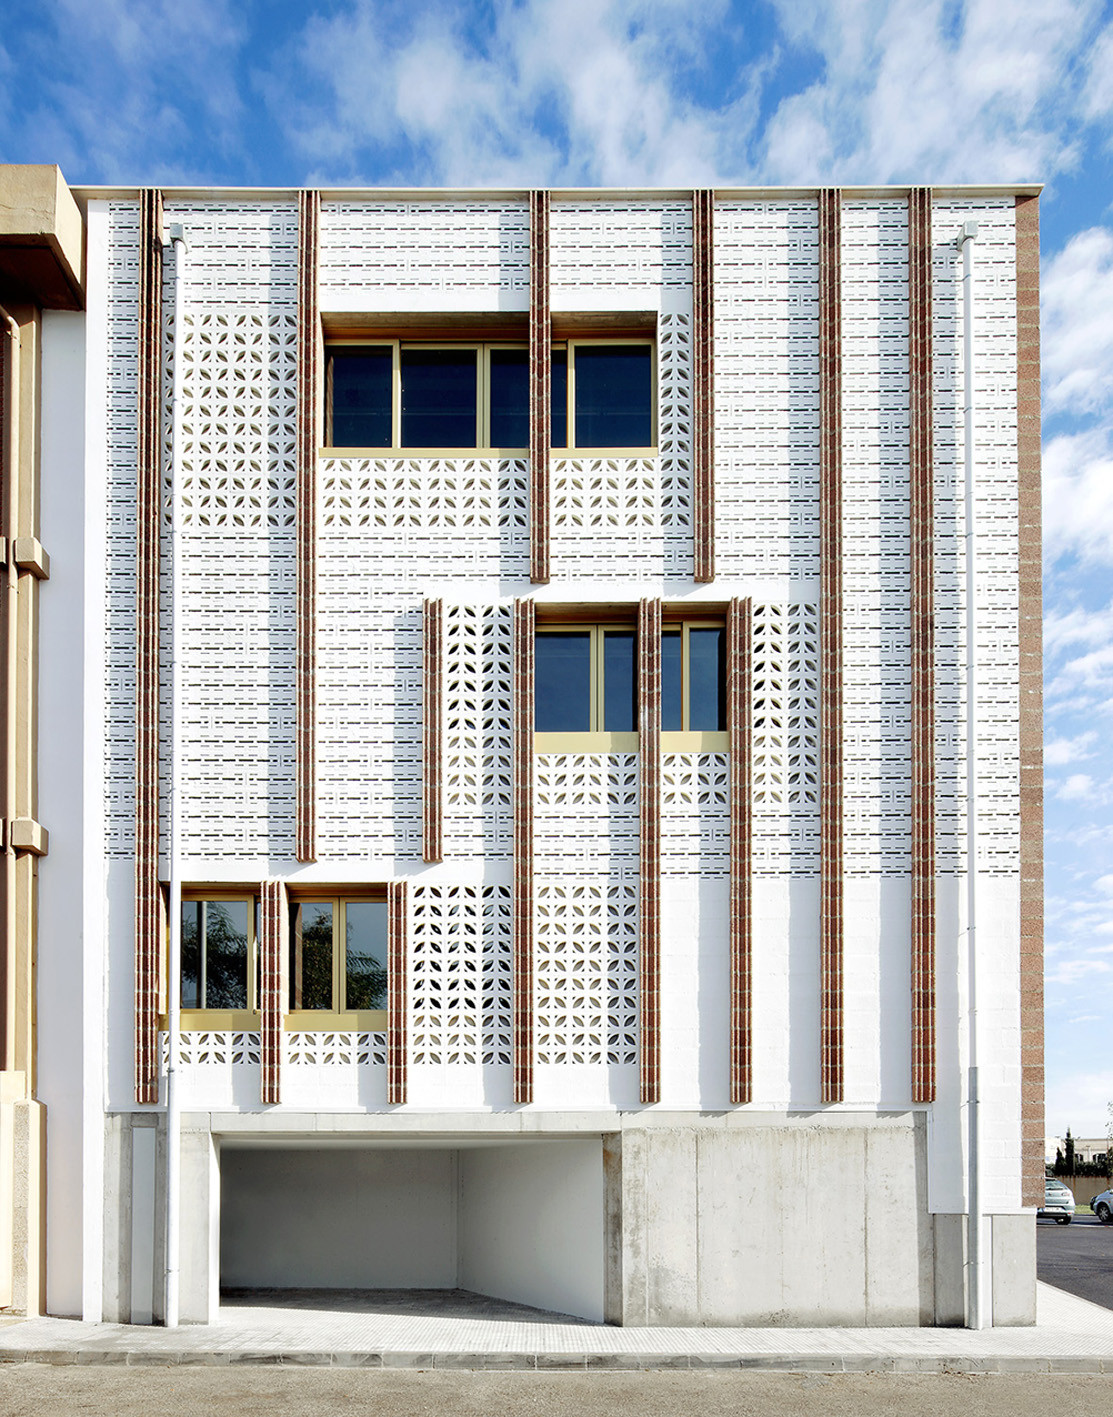 Gallery of high school extension sms arquitectos 9 - Colegio arquitectos palma de mallorca ...